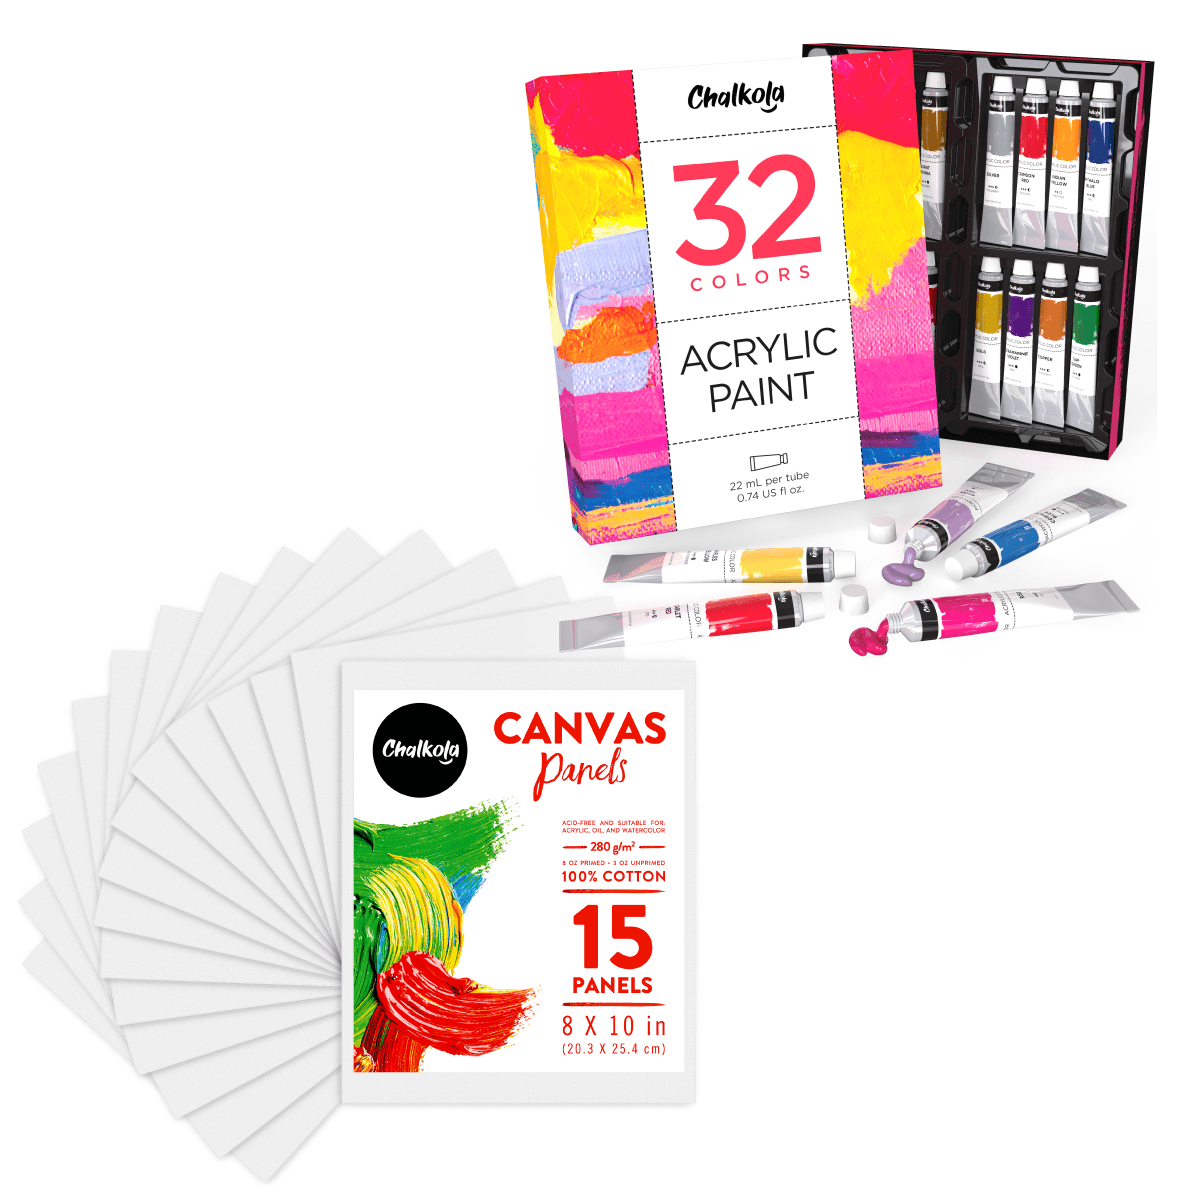 Artist's Bundle: 32 Acrylic Paint + 15 Canvas Panels